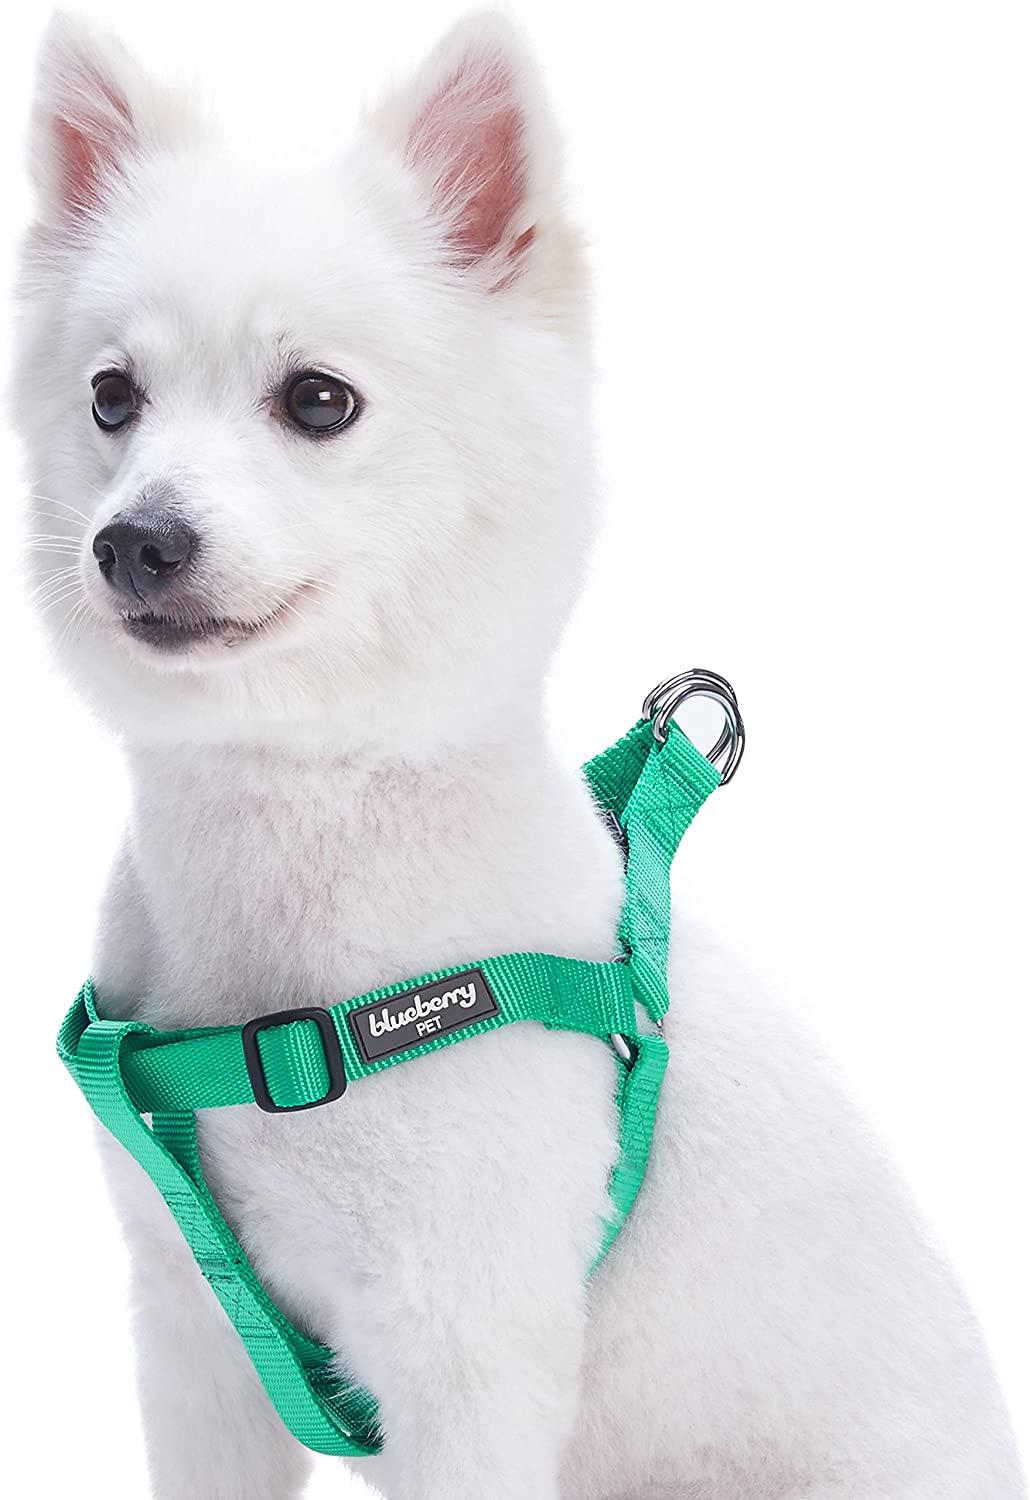 Dog wearing a step-in harness